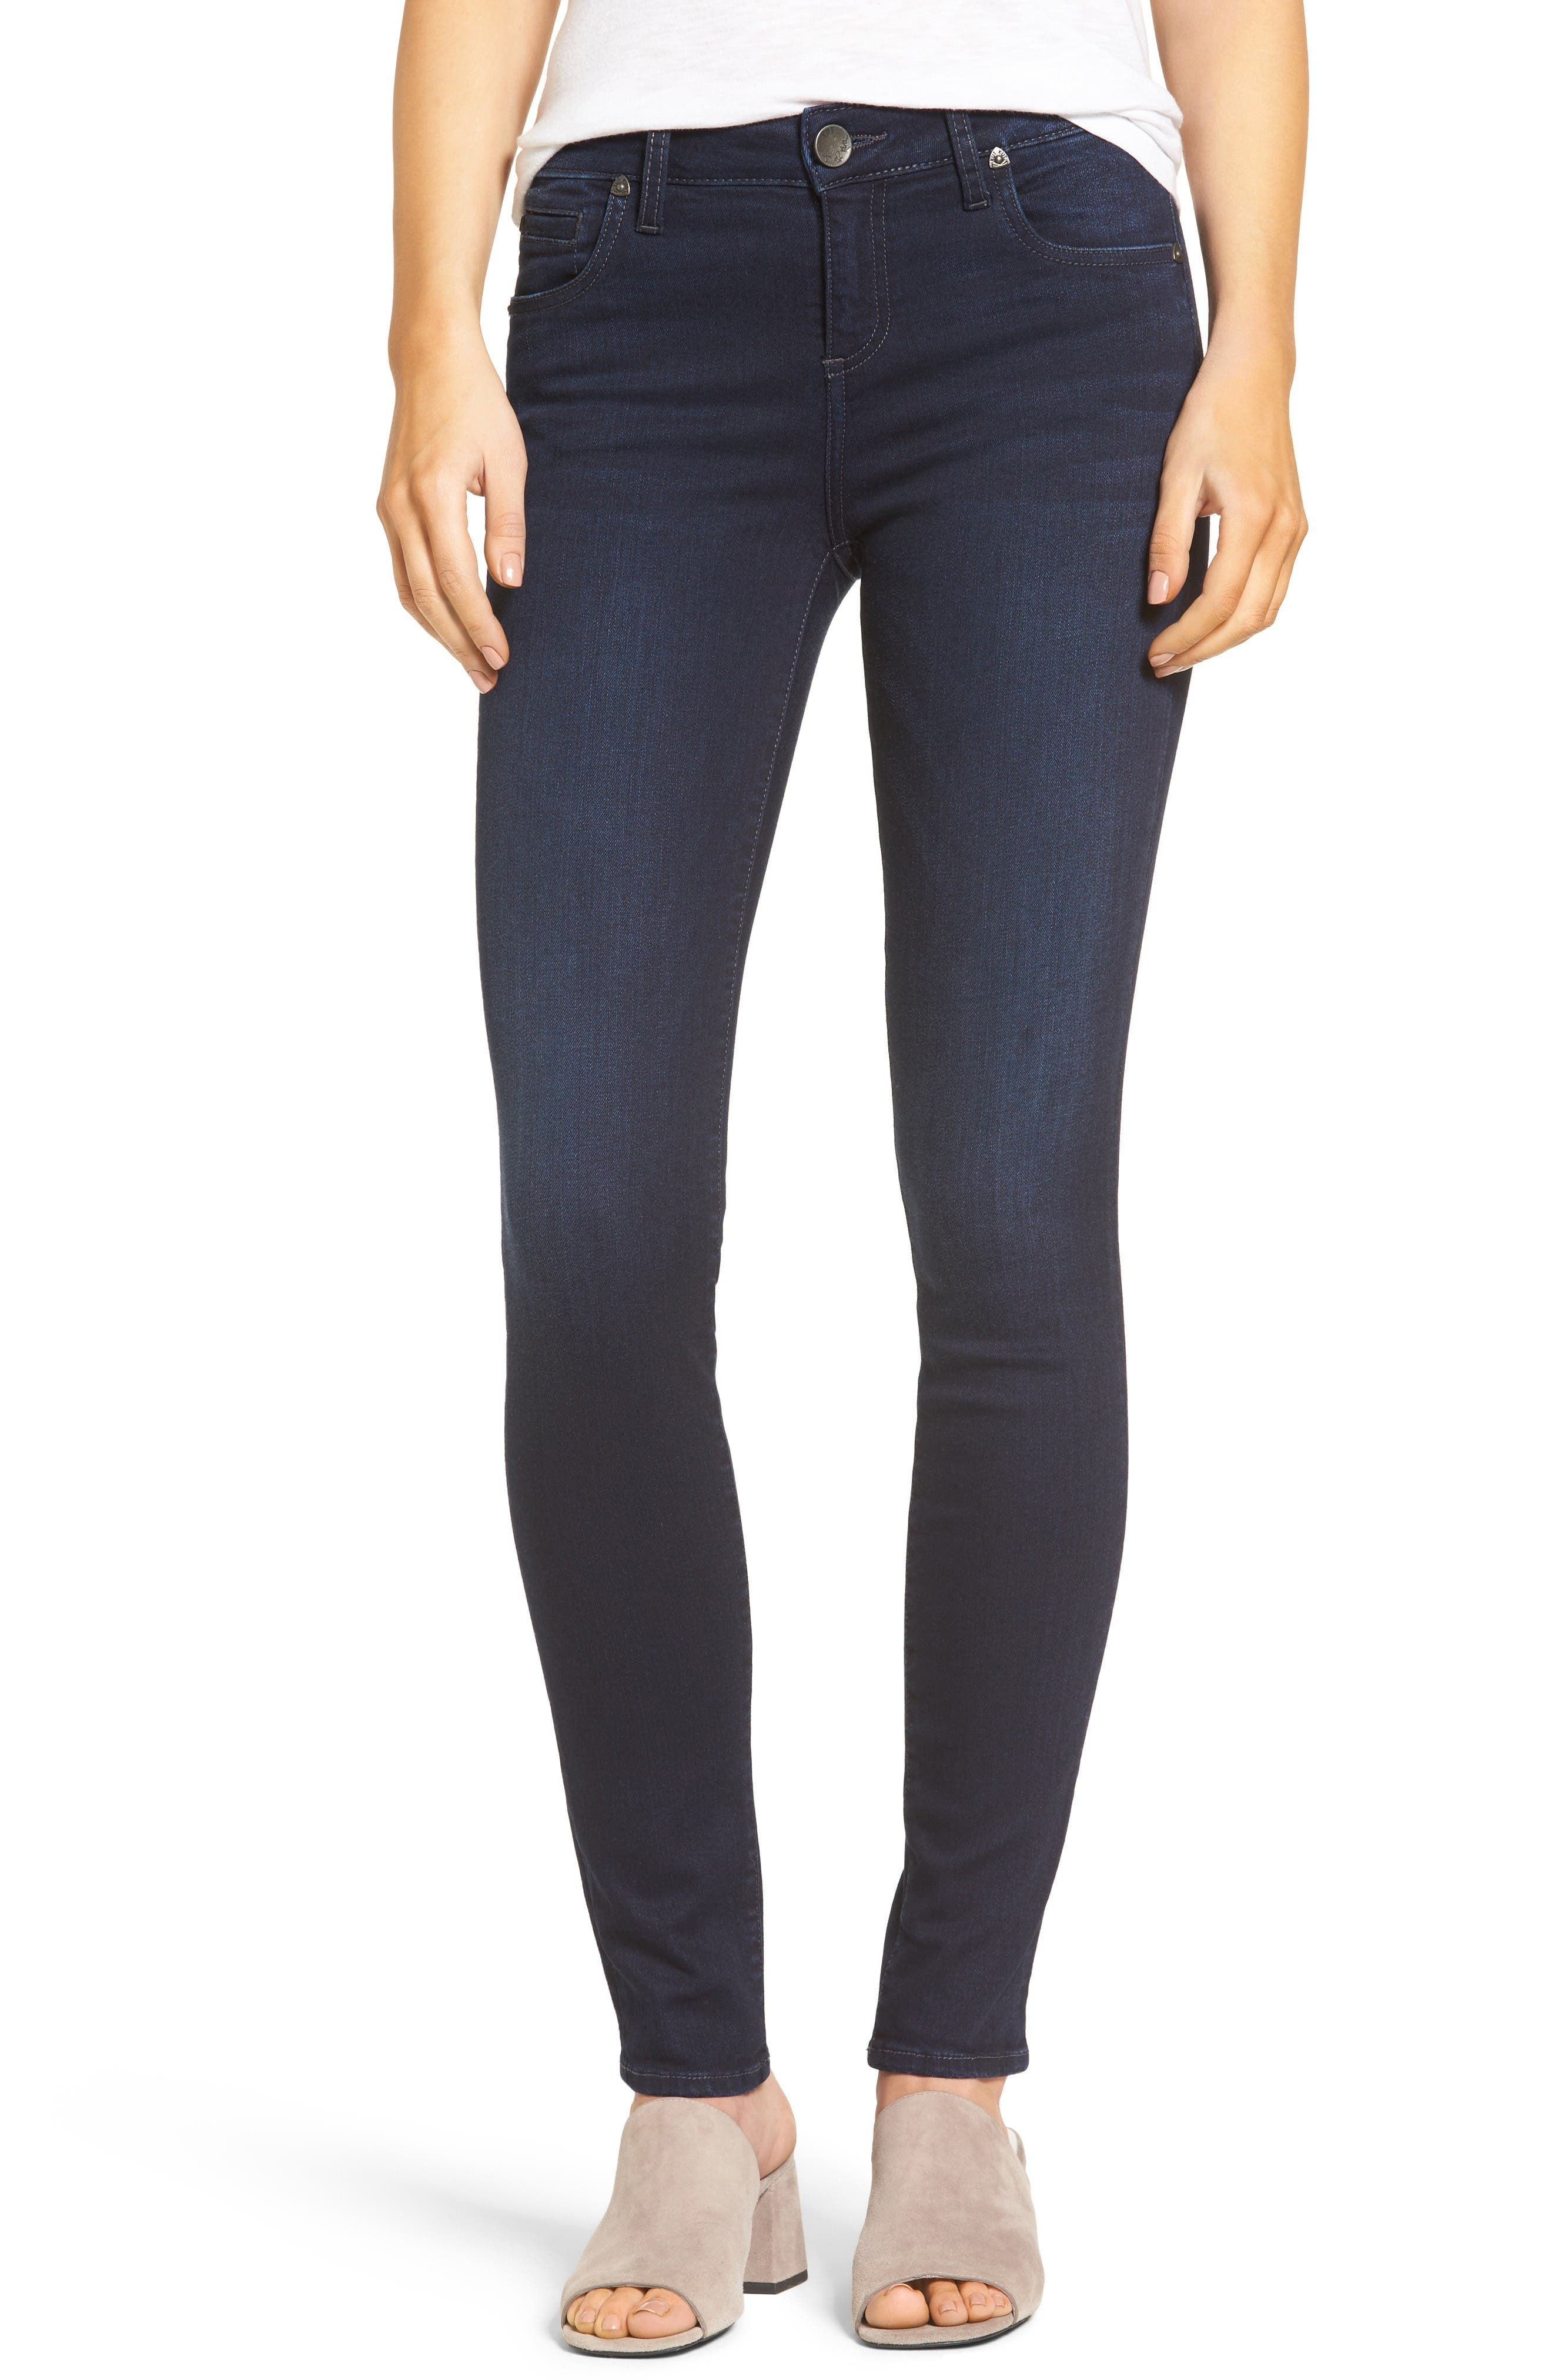 Main Image - KUT from the Kloth Diana Stretch Skinny Jeans (Gained) (Regular & Petite)